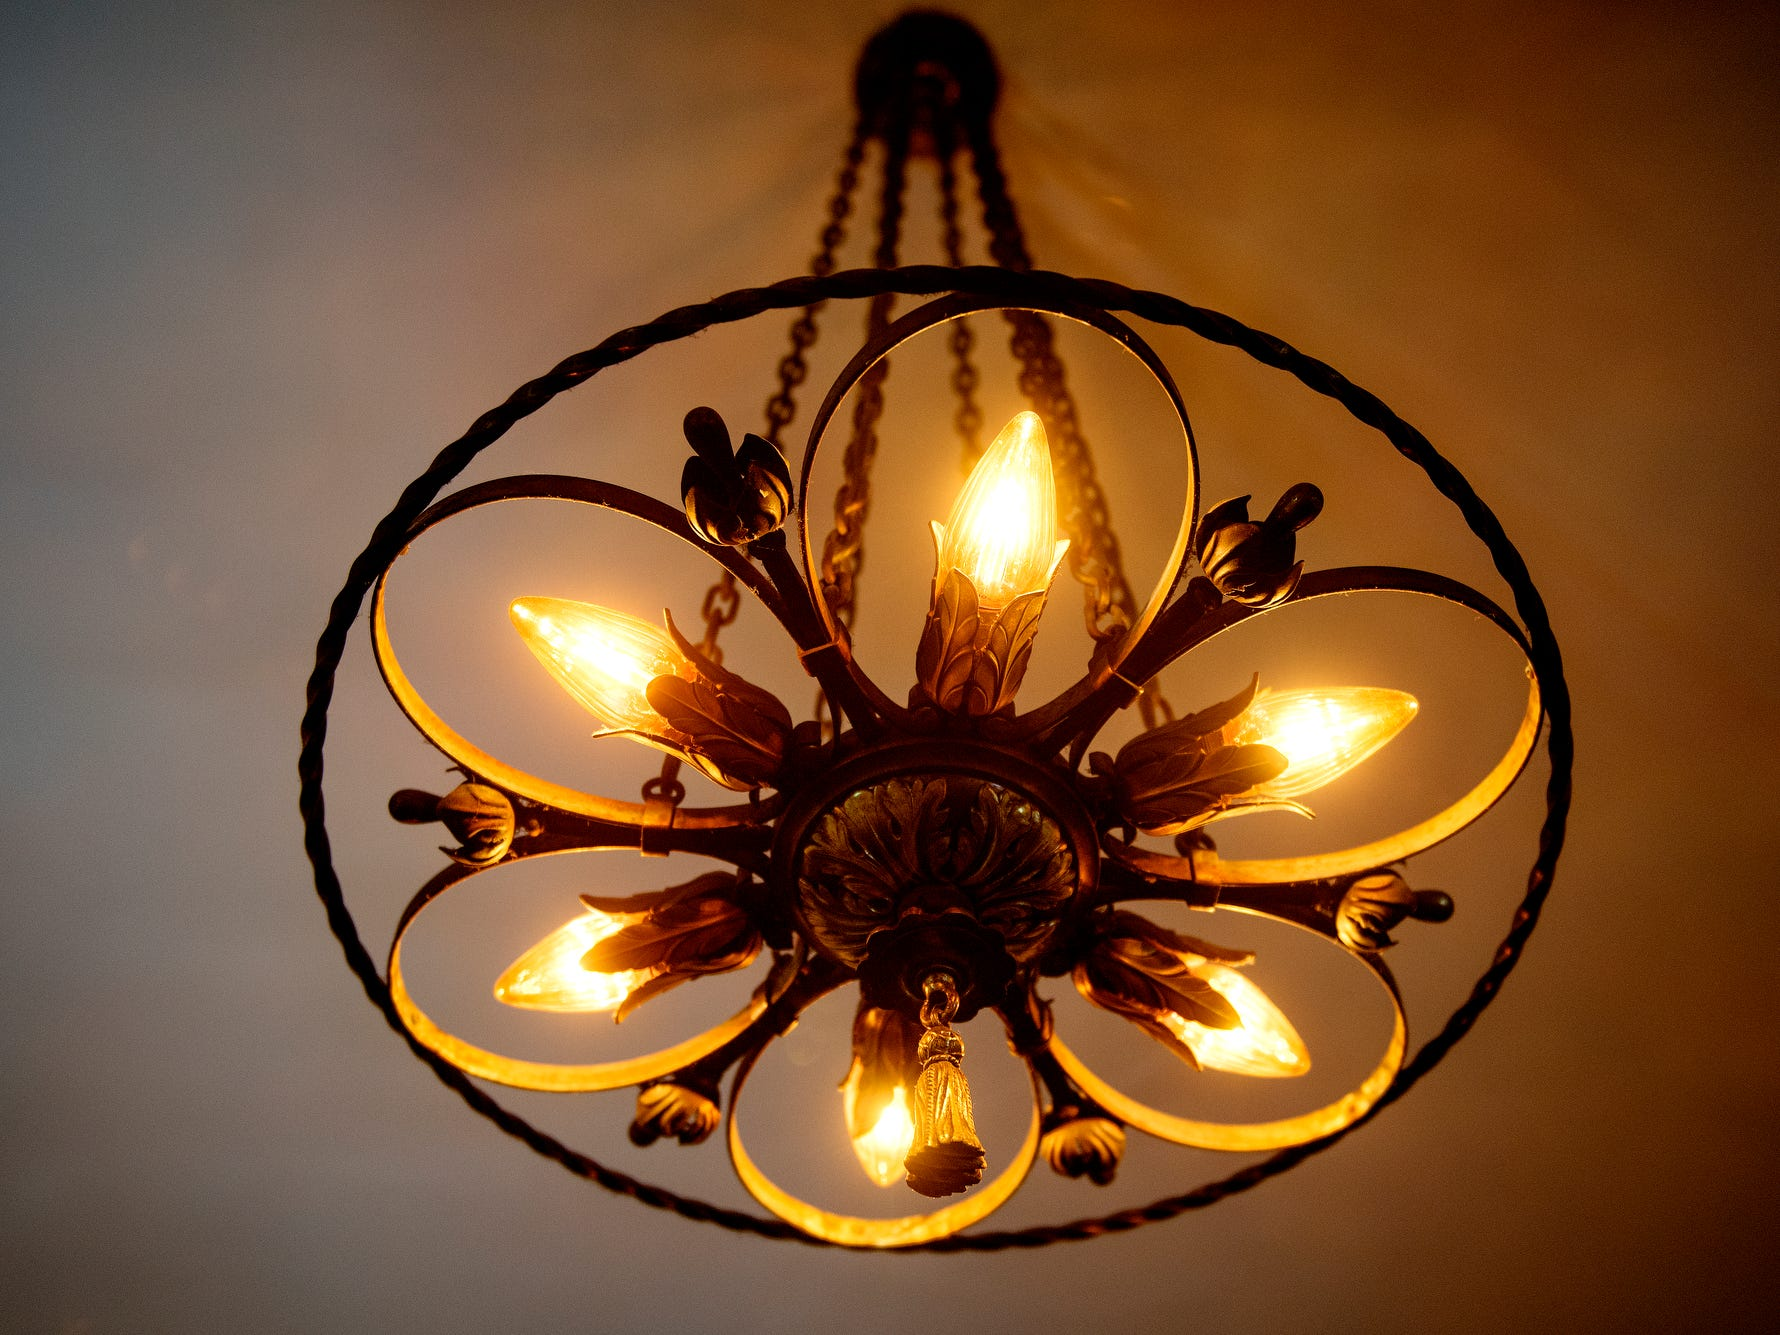 An original light fixture hangs inside the English Inn on Tuesday, Aug. 28, 2018, in Eaton Rapids.